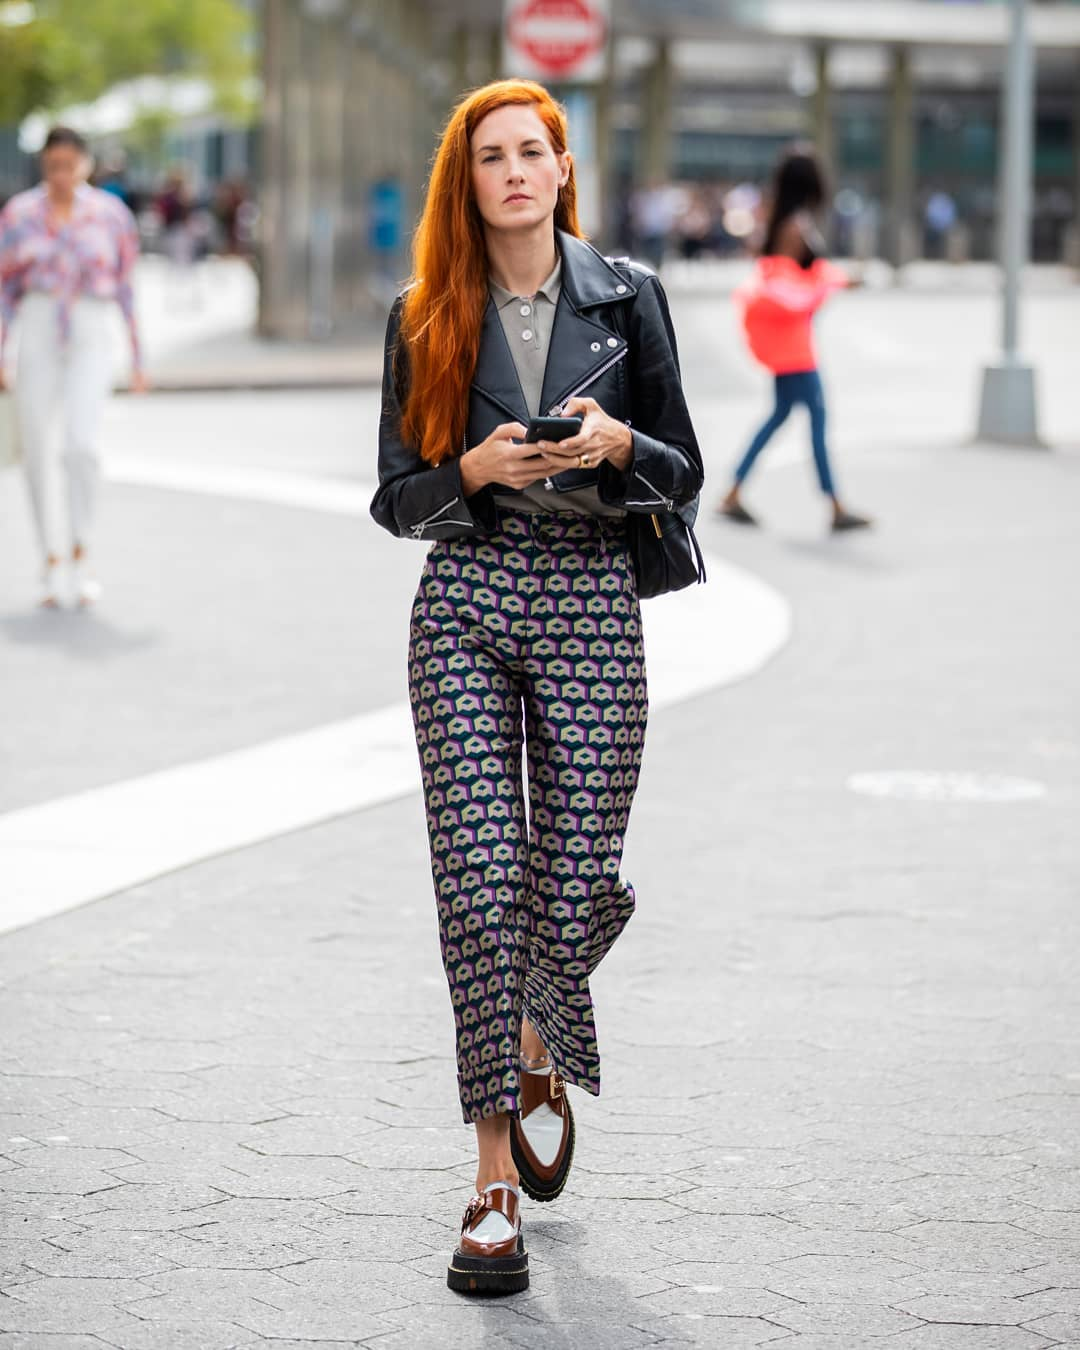 Printed Pants Are the Perfect Statement Piece for Fall